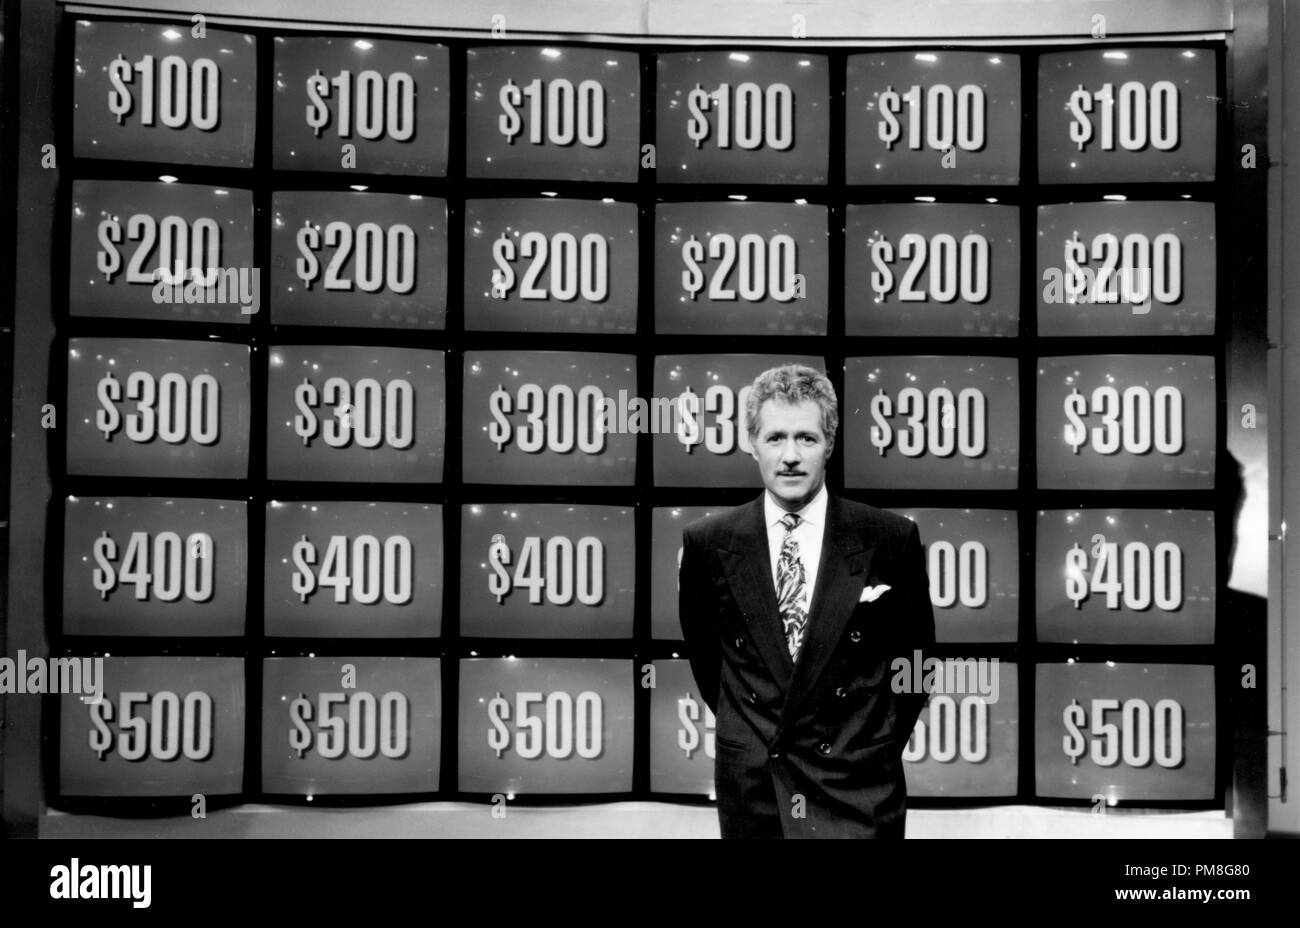 "Film still / publicity still from ""Jeopardy!"" Alex Trebek © 1993 King World Productions   File Reference # 31371258THA  For Editorial Use Only All Rights Reserved Stock Photo"